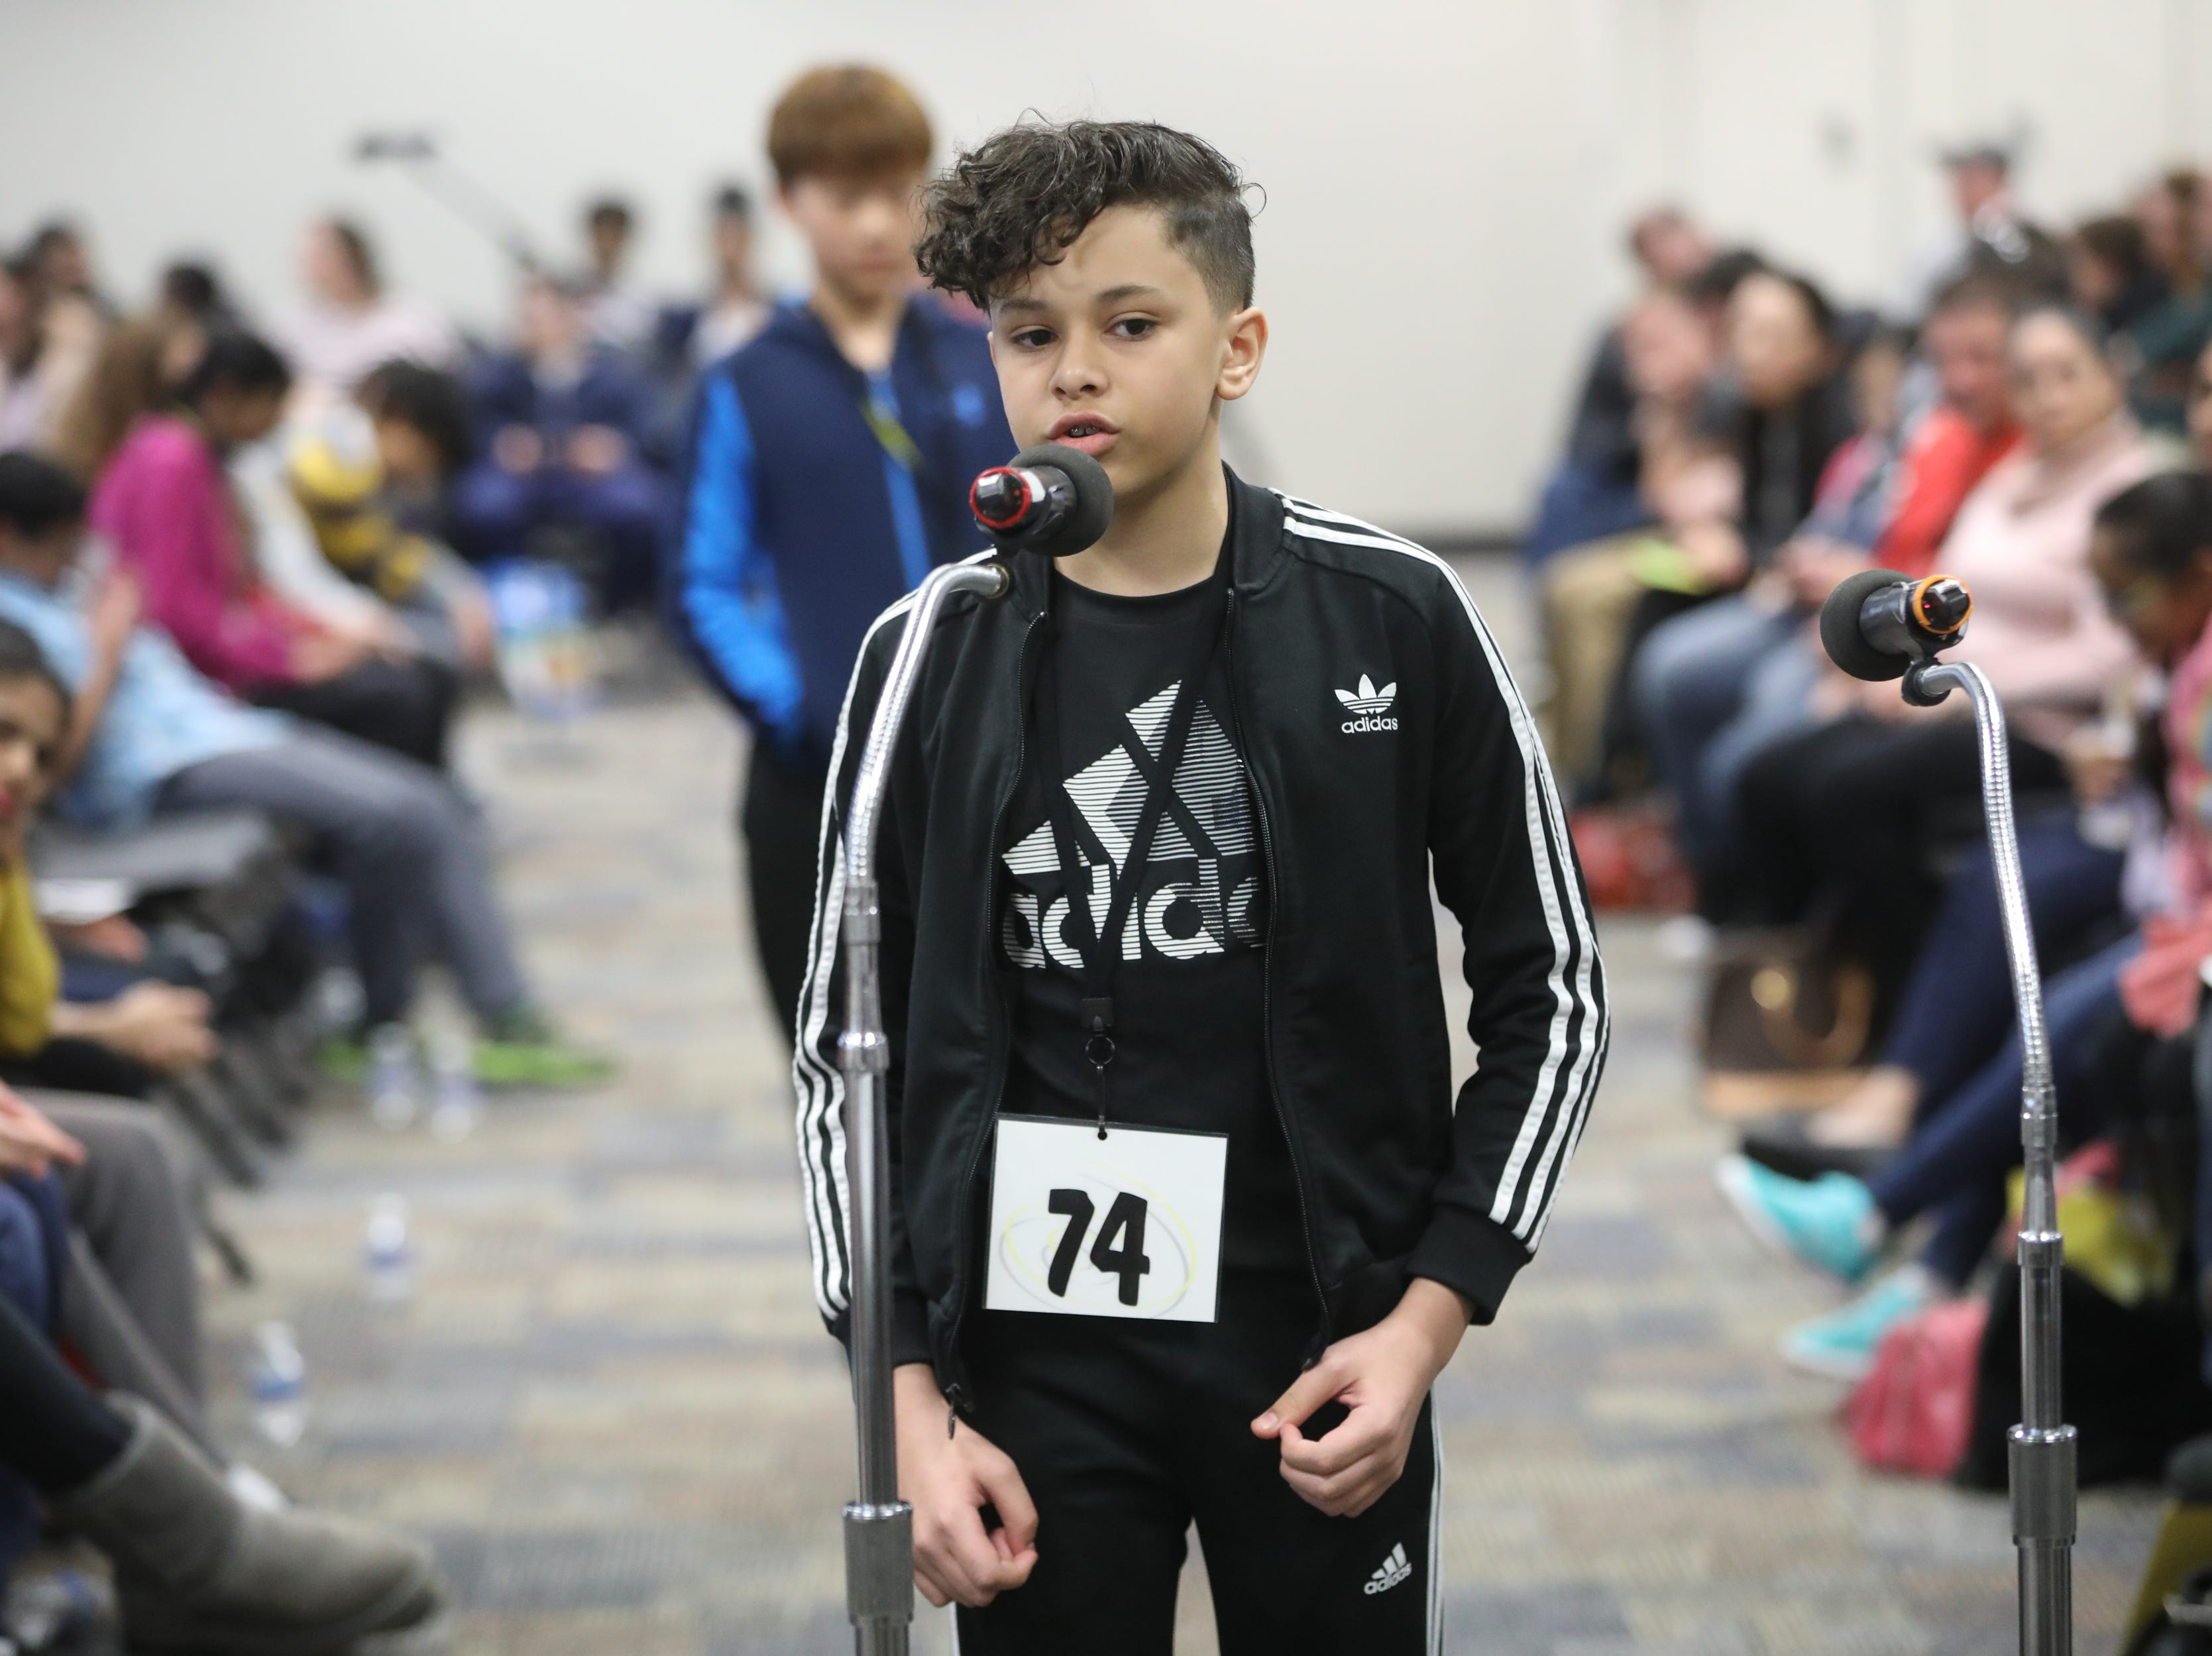 Socrates Luciano, of Fort Lee, competes in the first round of the 2019 North Jersey Spelling Bee, in Paramus. Thursday, March 14, 2019